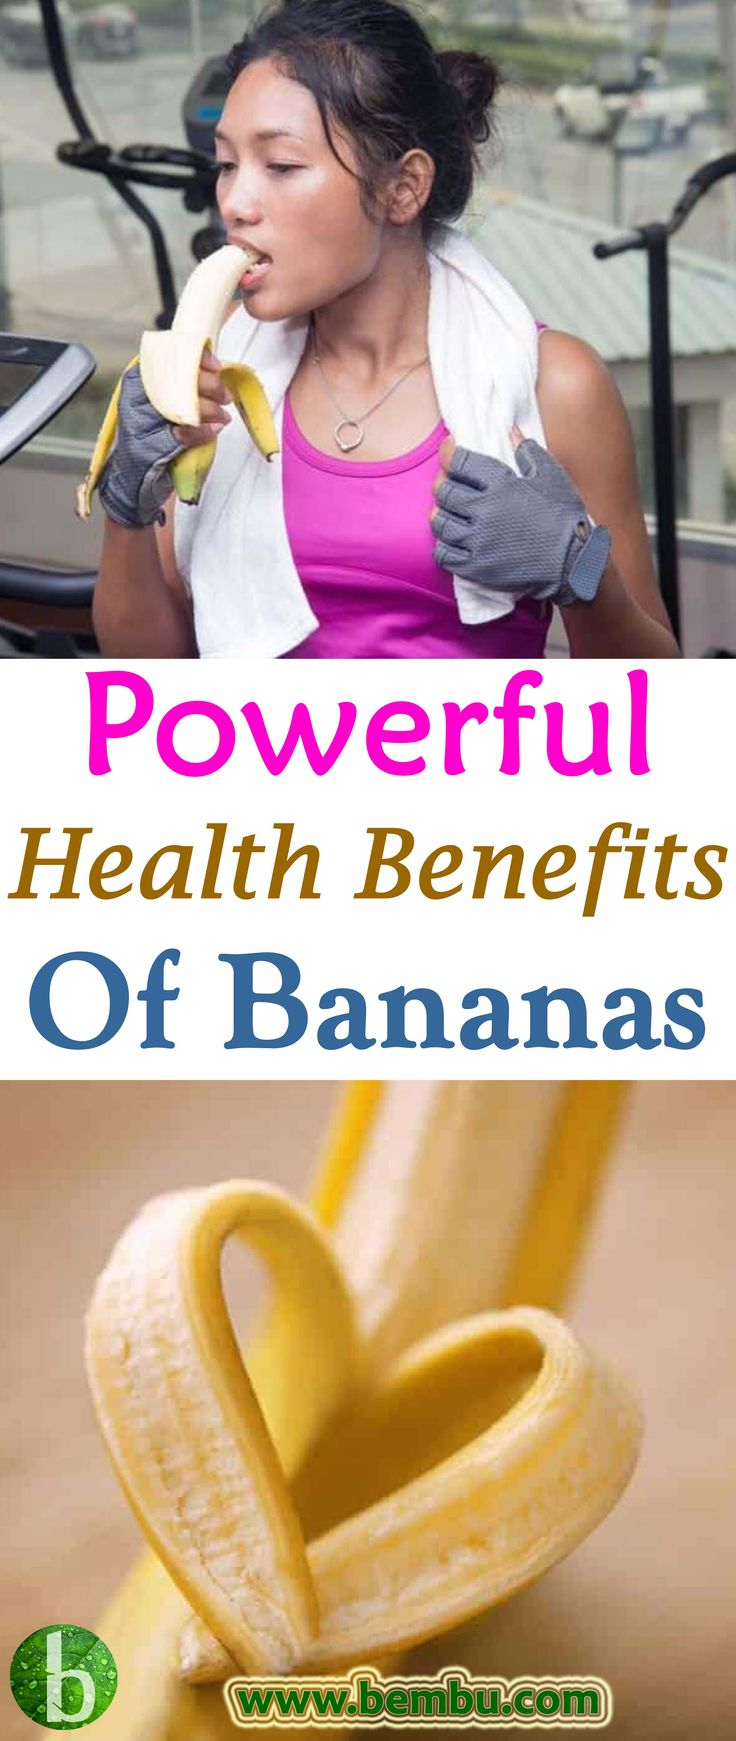 Check out the top 10 powerful health benefits of bananas... Health Tips │ Health Ideas │Healthy Food │Health │Food │Desserts │Low Carb │Weight Loss │Diet │Fitness #Health #Ideas #Tips #Vitamin #Healthyfood #Food #Desserts #Lowcarb #Weightloss #Diet #Fitness